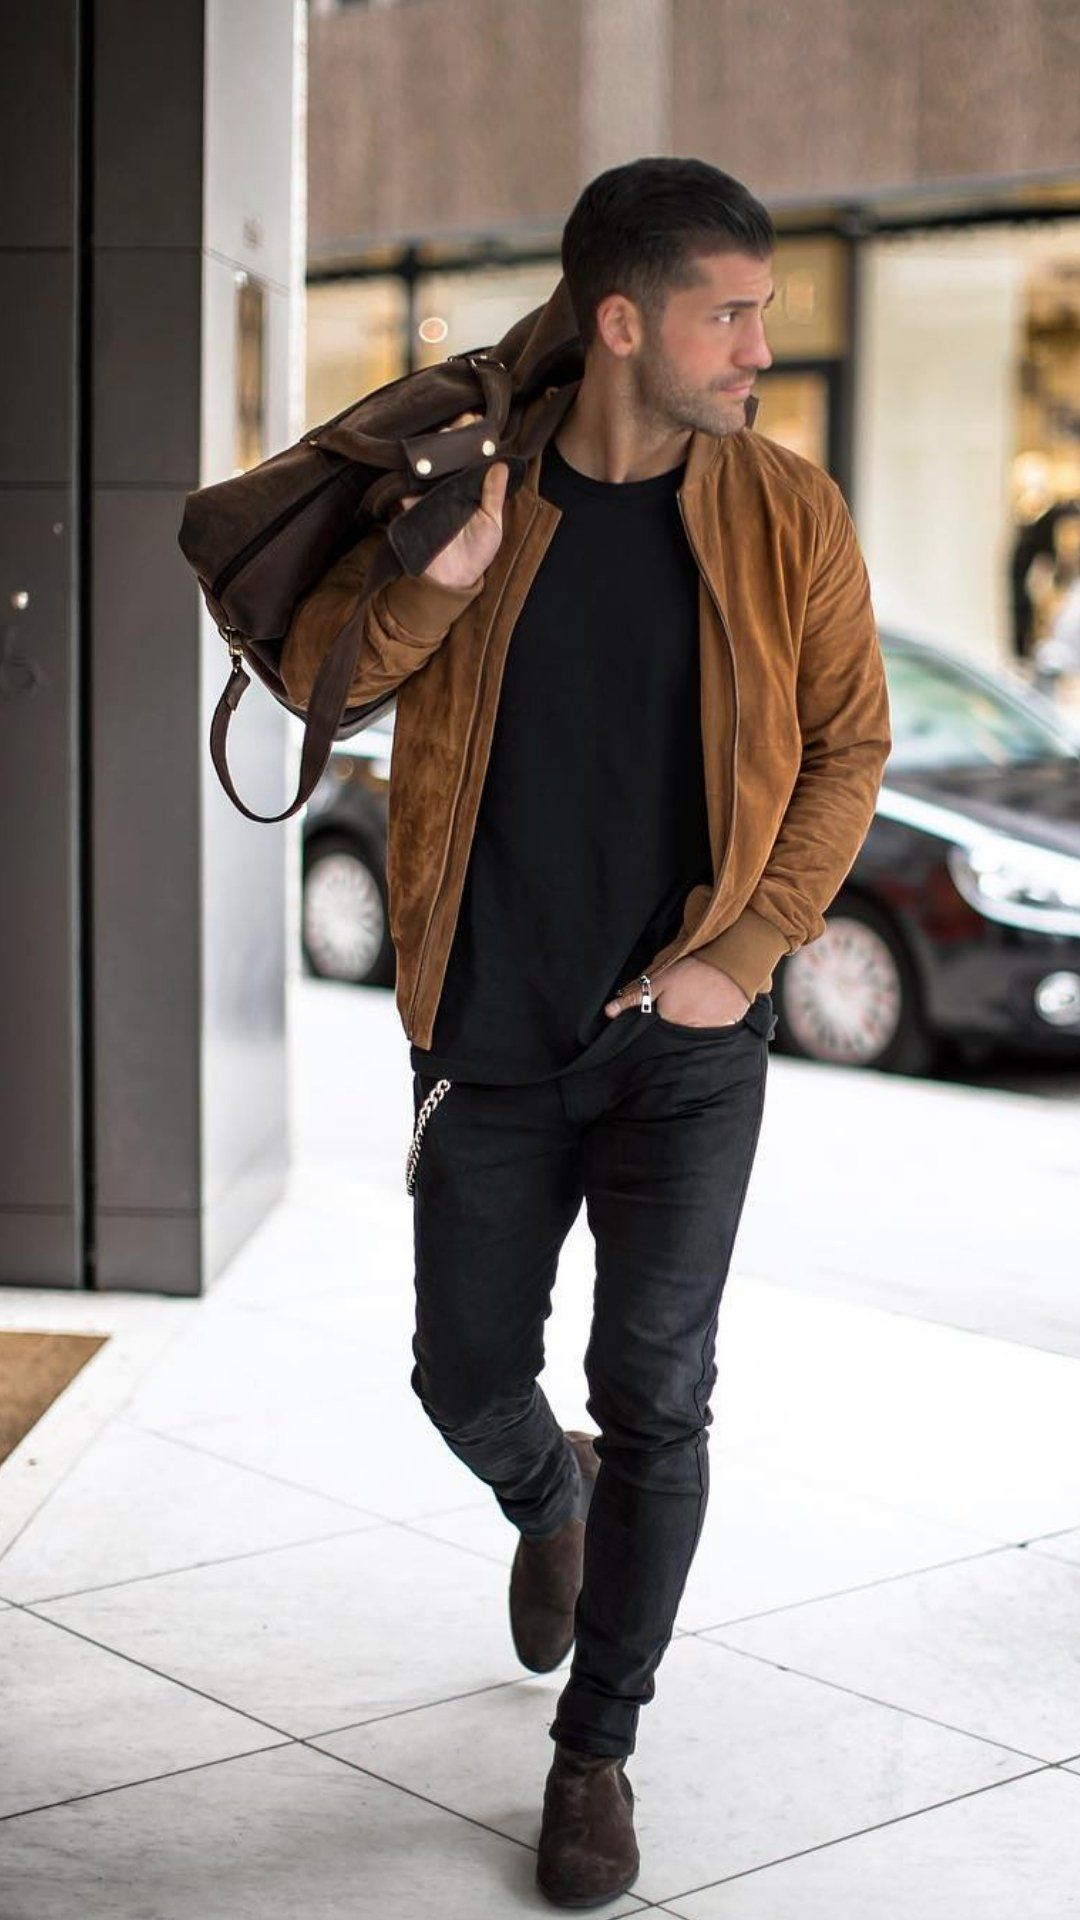 5 Cool Jacket Outfits You Can Steal Jacket Outfits Mensfashion Streetstyle Suede Jacket Men Mens Outfits Brown Leather Jacket Outfit [ jpg ]